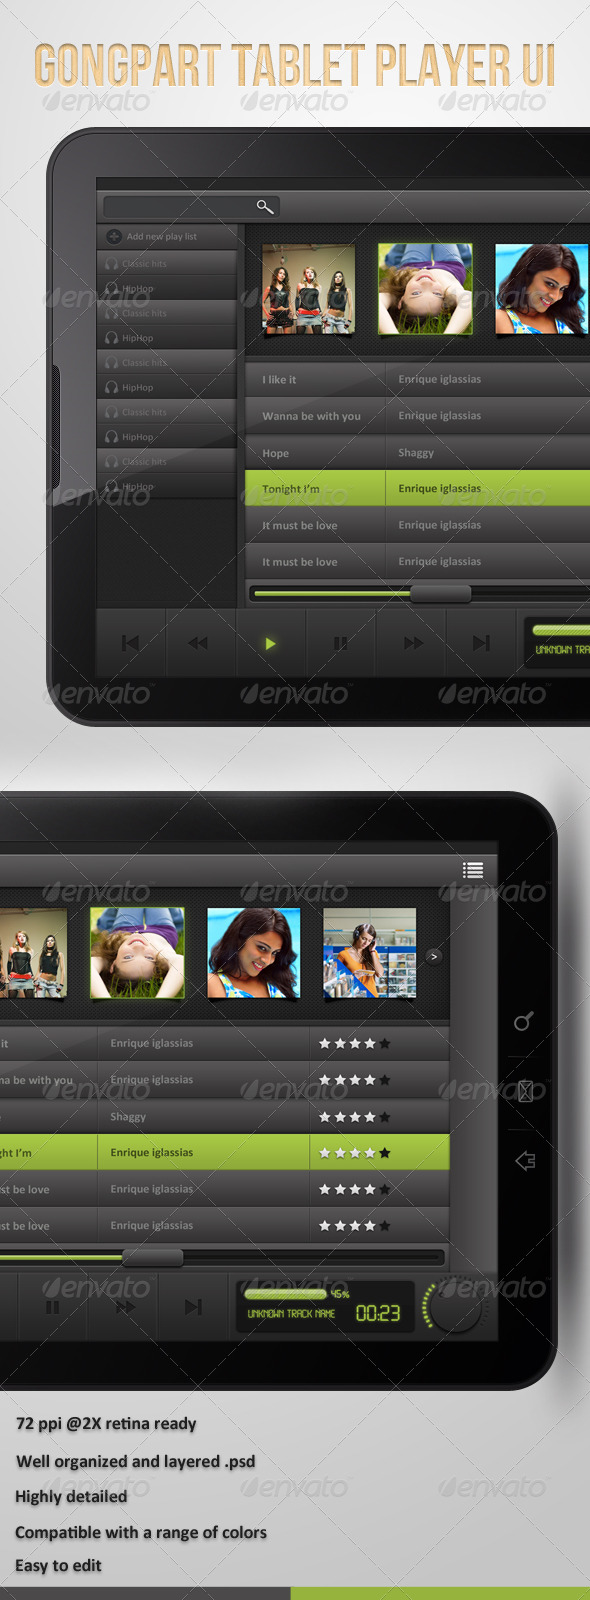 GraphicRiver Gongpart Tablet Player UI 4213463